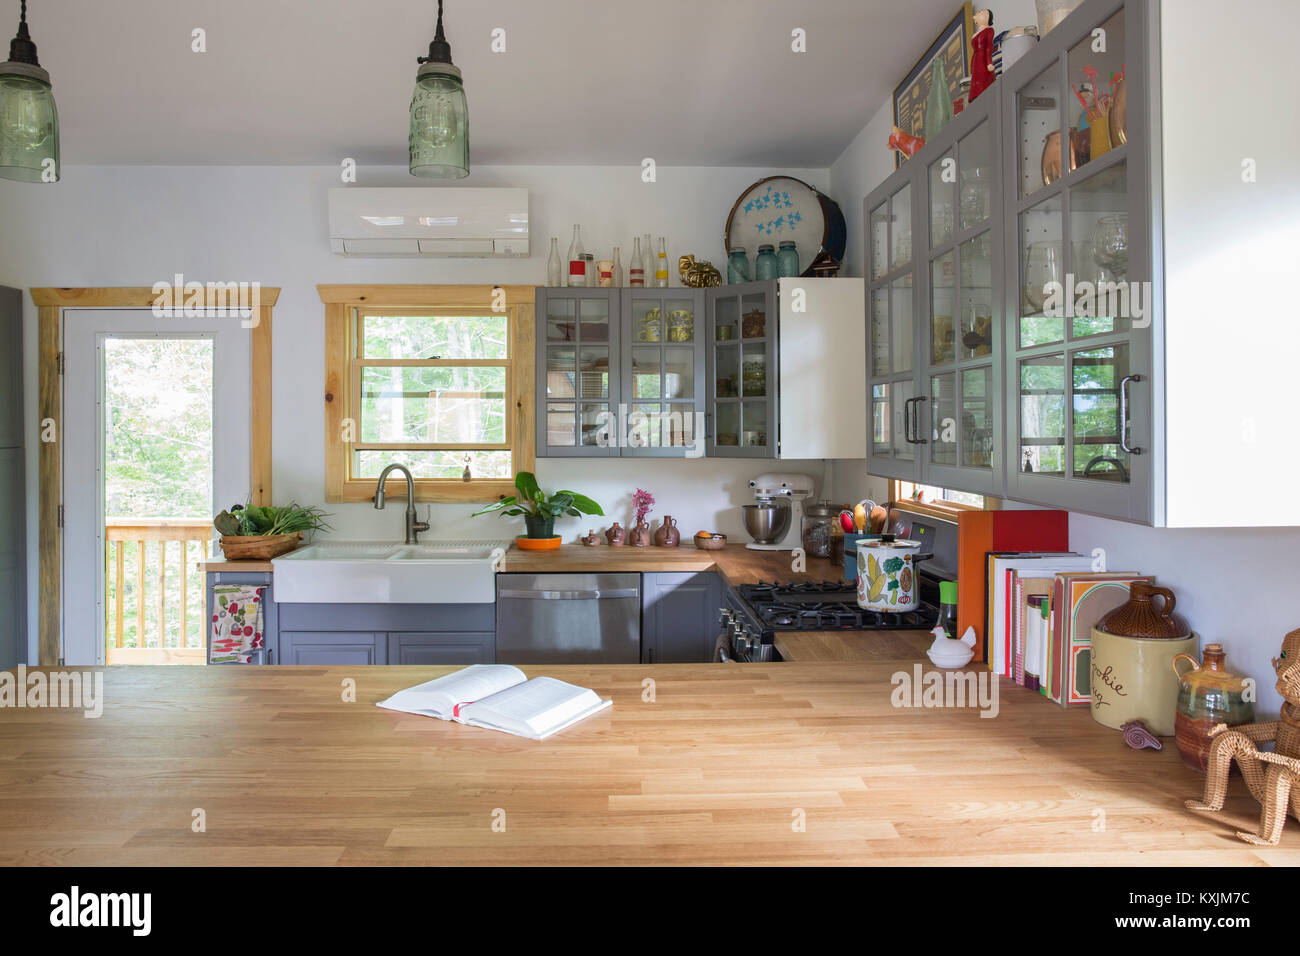 Open plan country kitchen - Stock Image